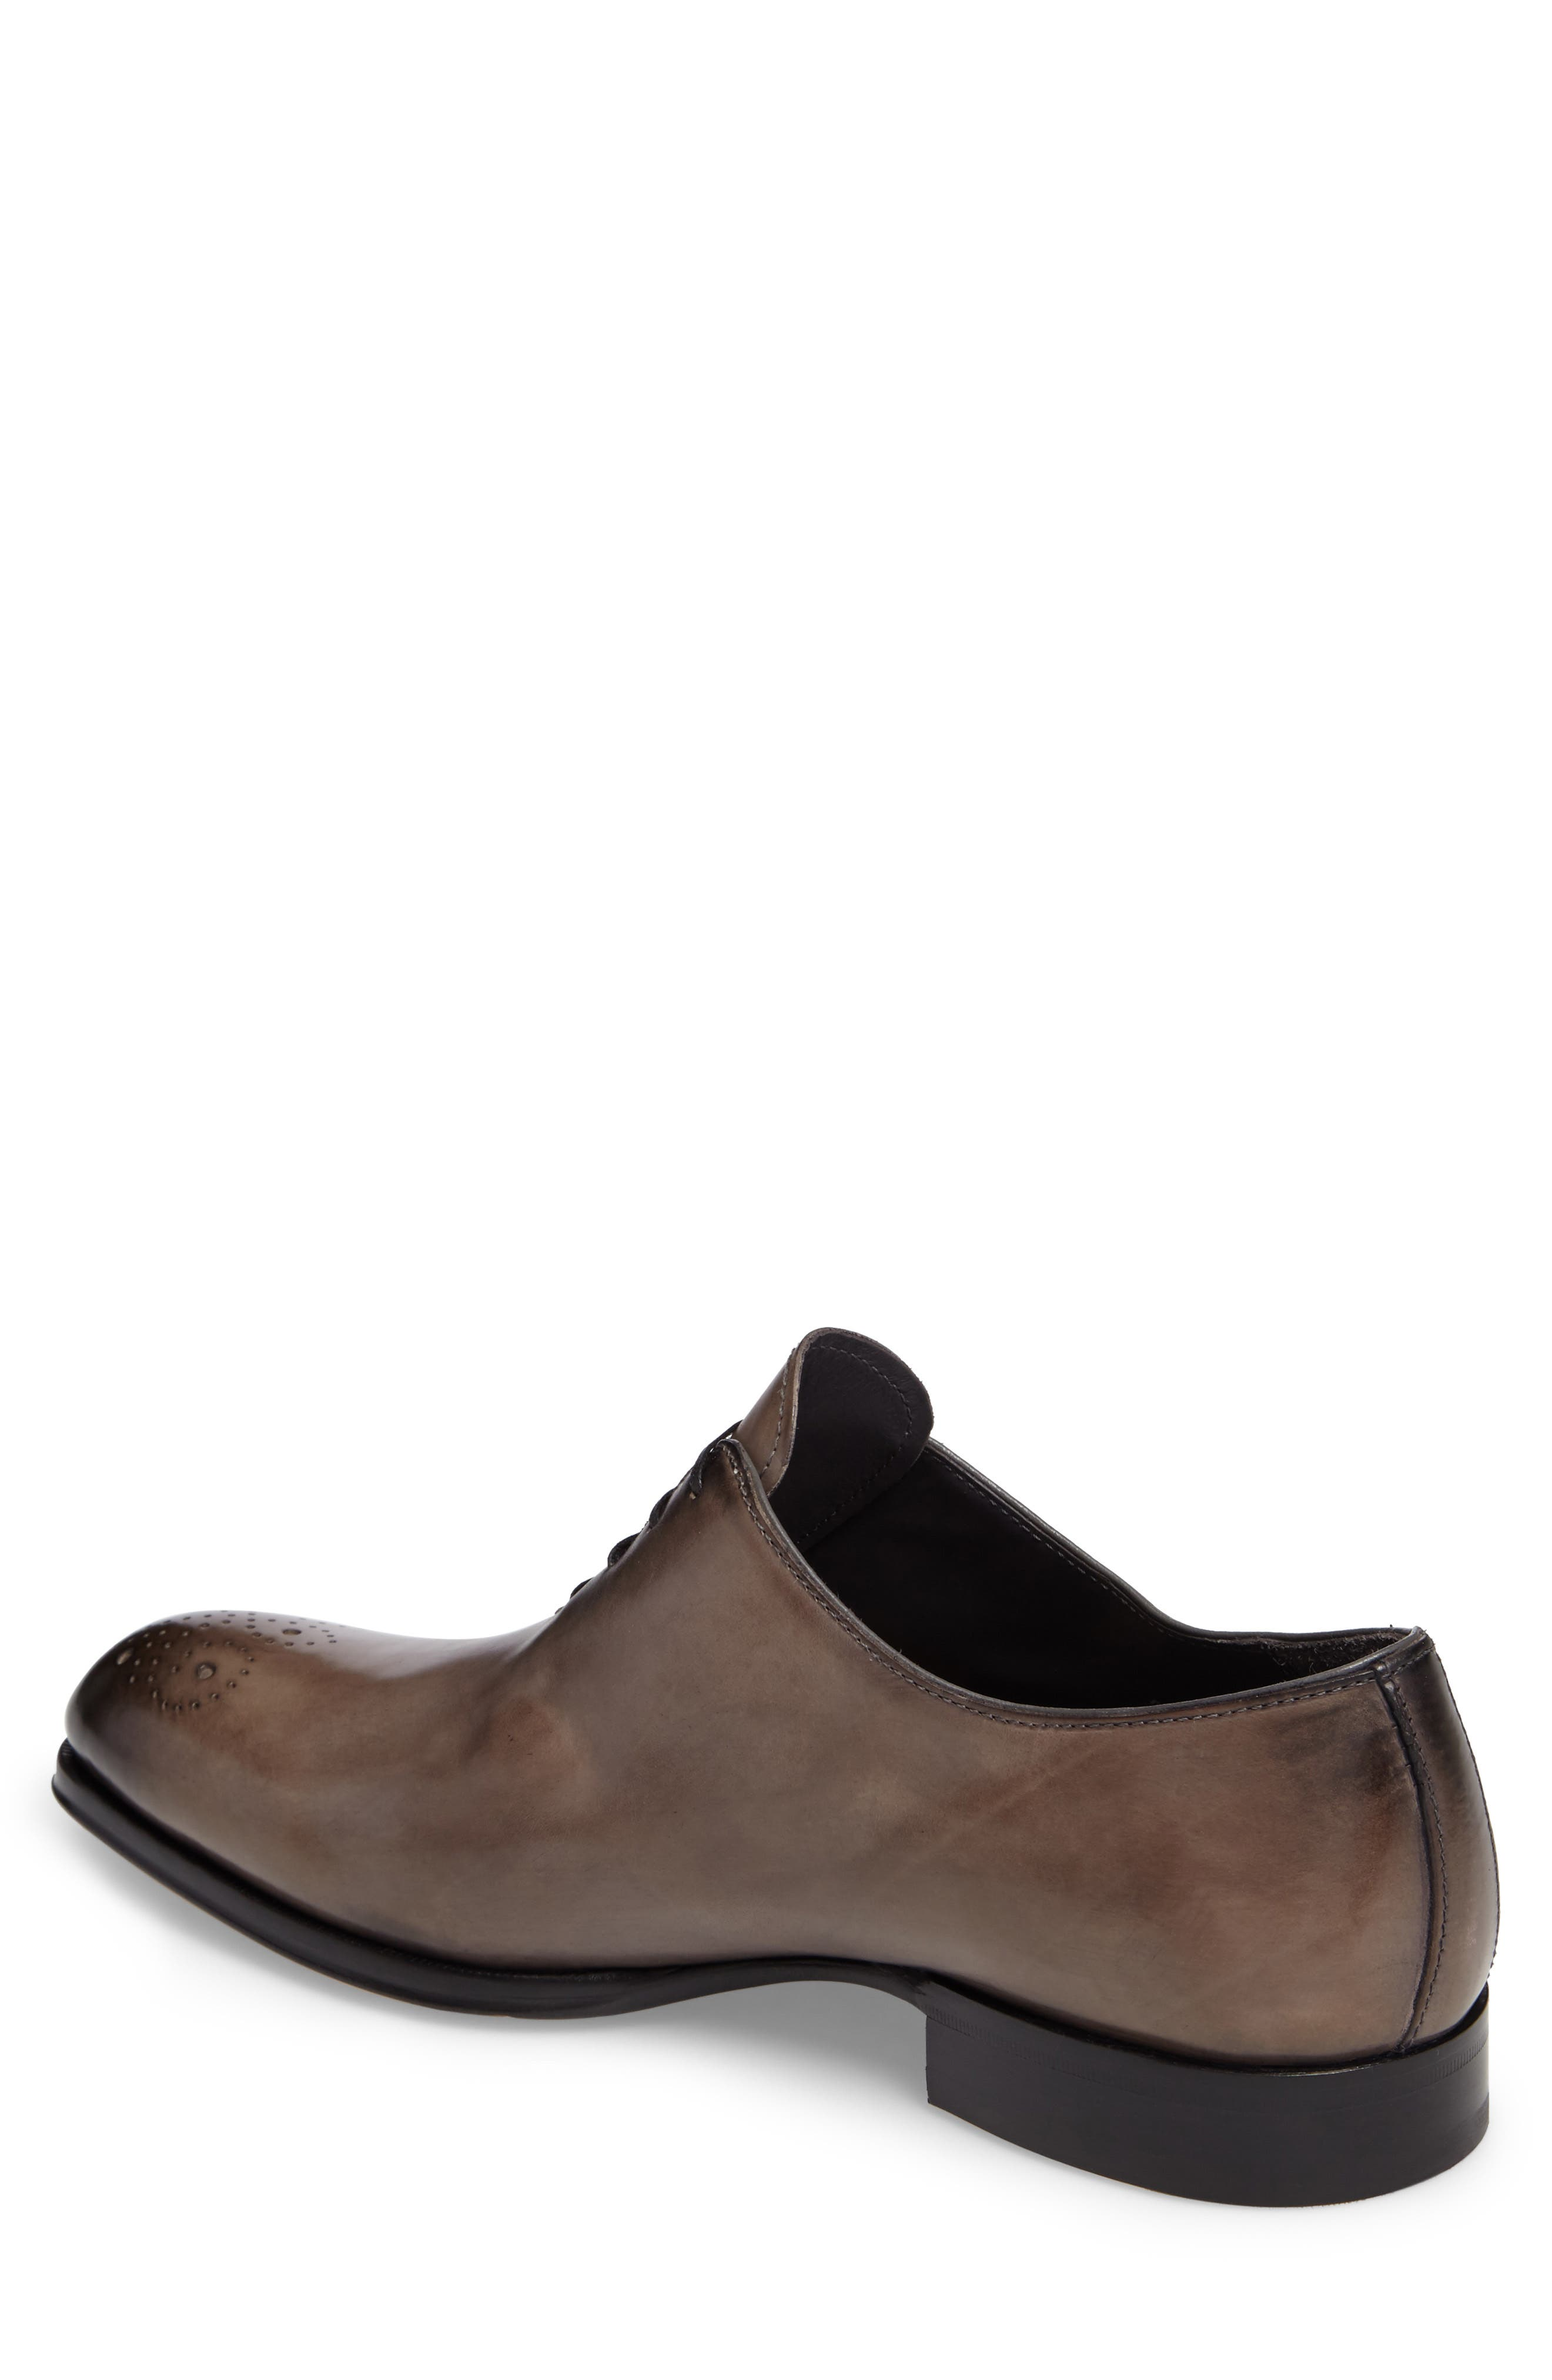 Bateman Brogue Oxford,                             Alternate thumbnail 2, color,                             024